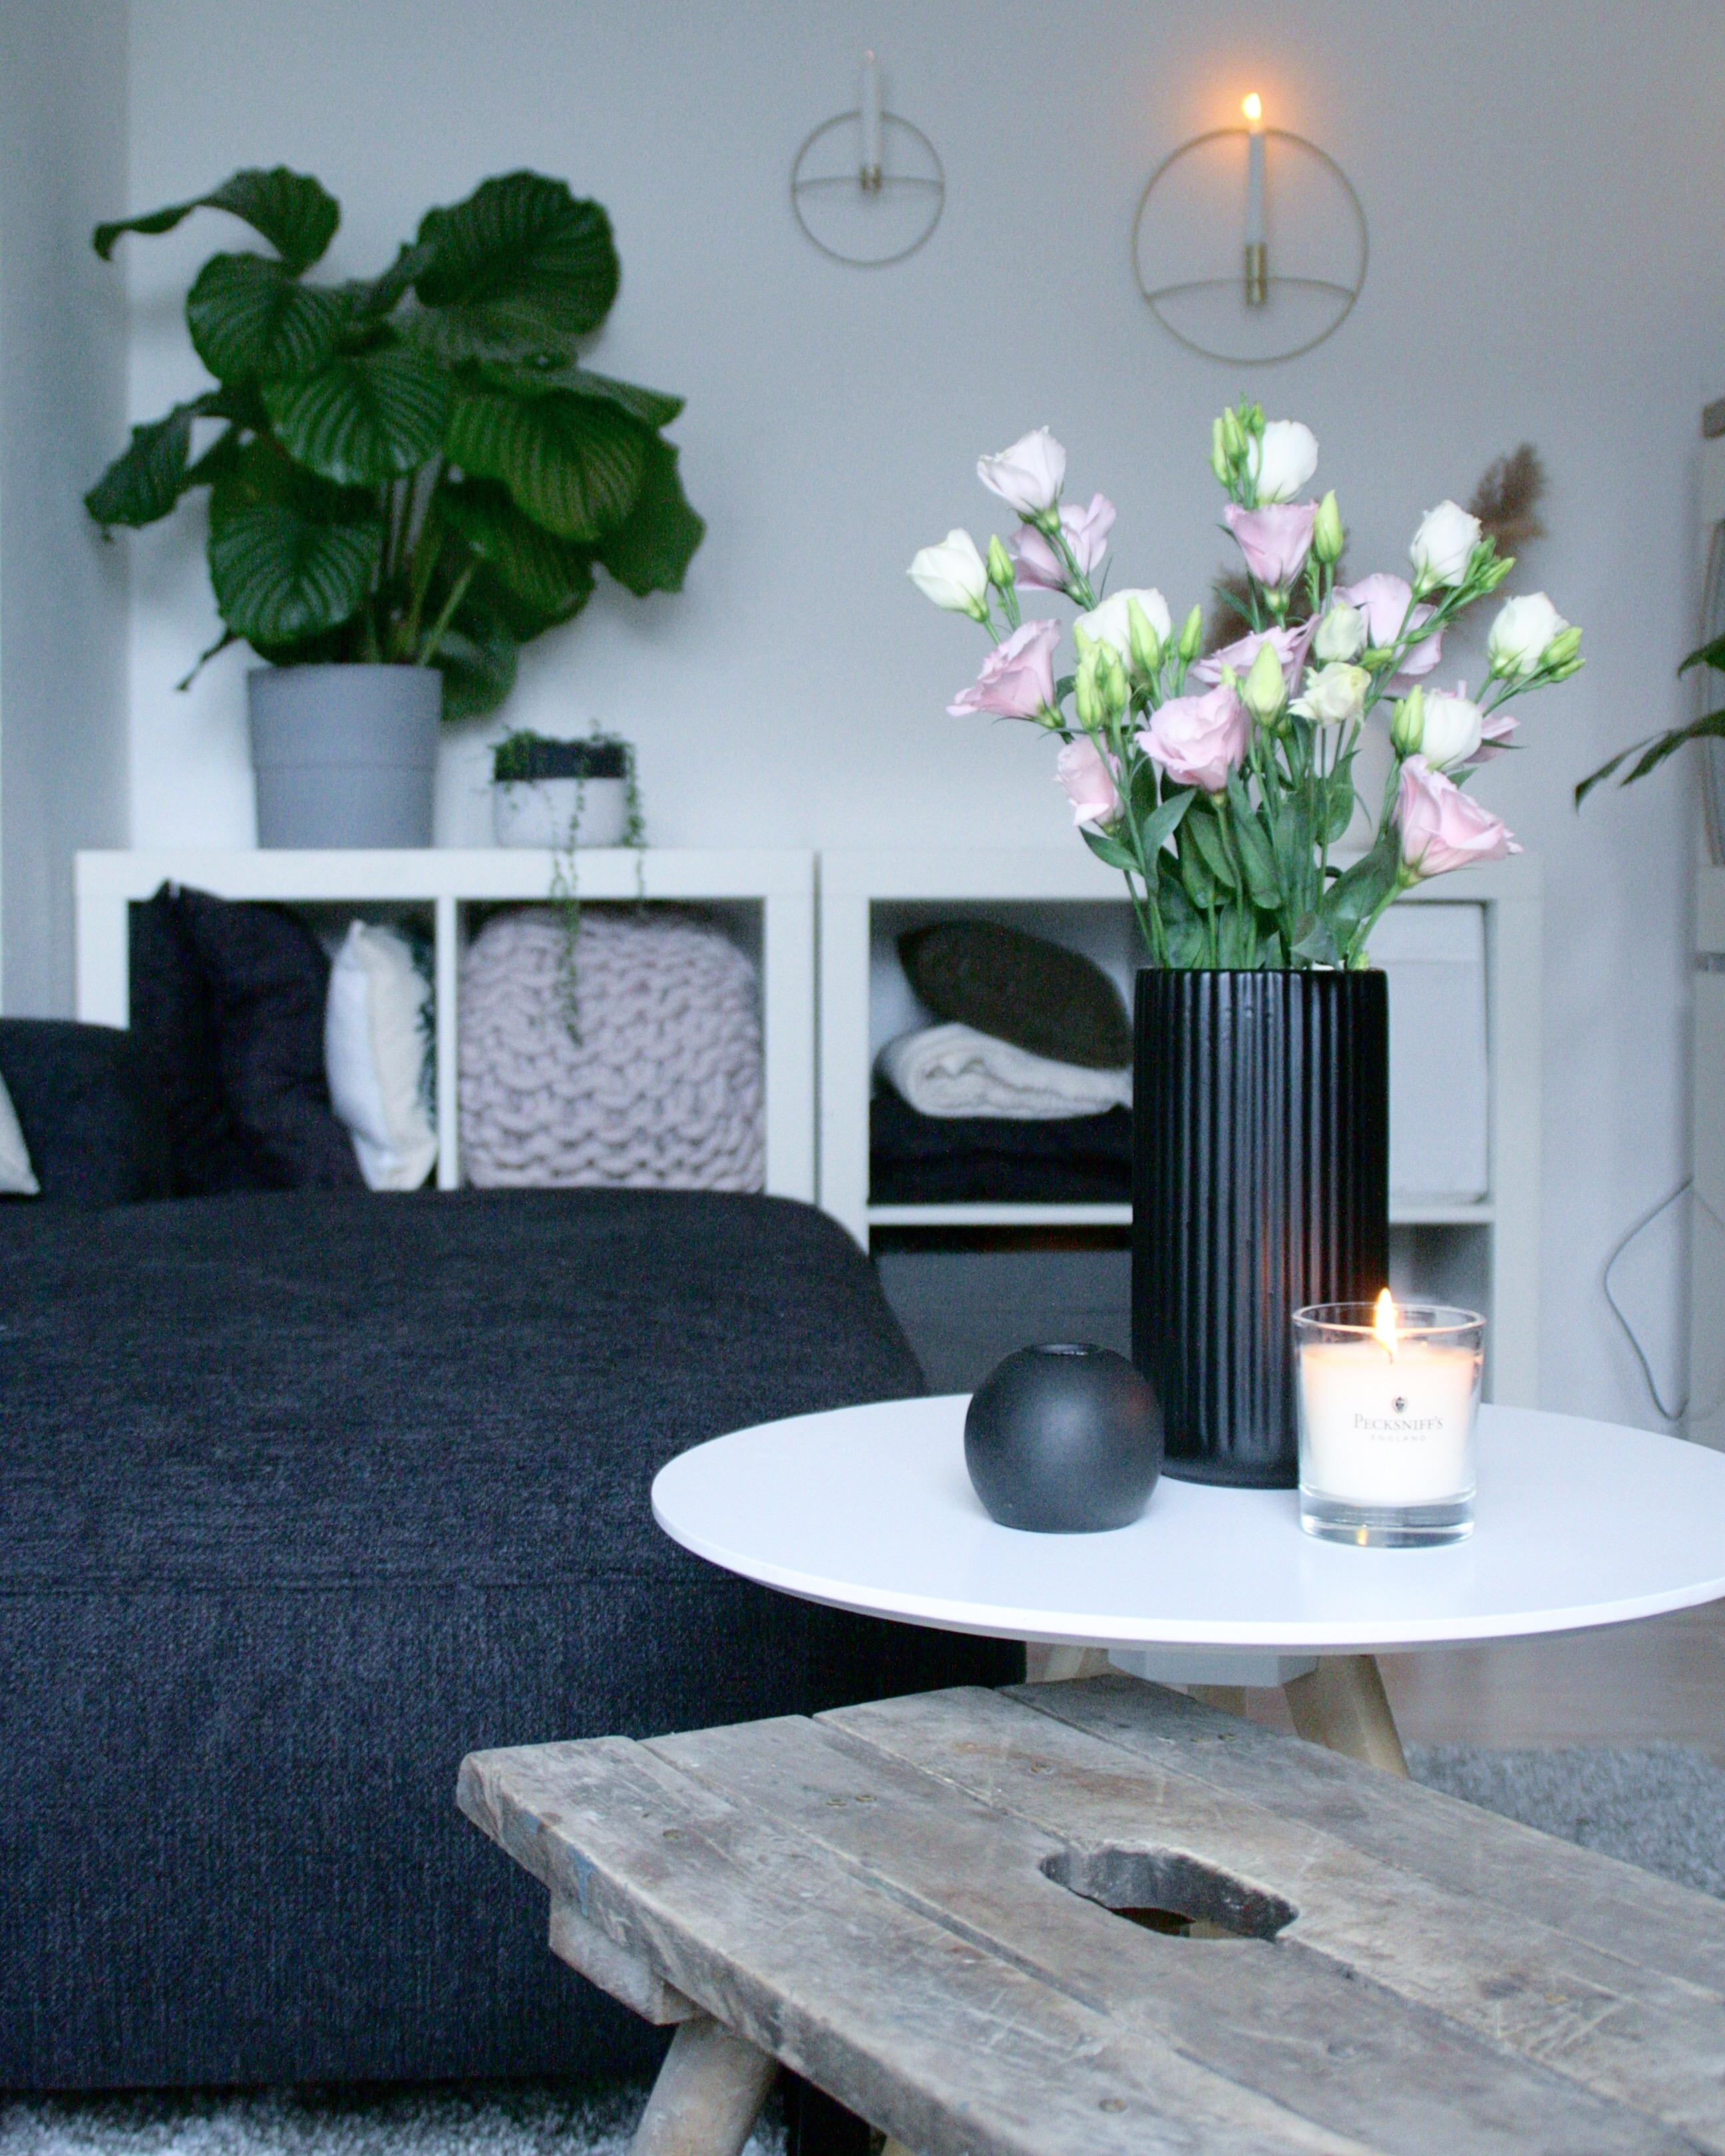 Wohnzimmer wohnen couchliebt couchstyle sofa couch wohnung urbanjungle flowers  9351604e 16d9 43e5 bd9a 310d1a372287